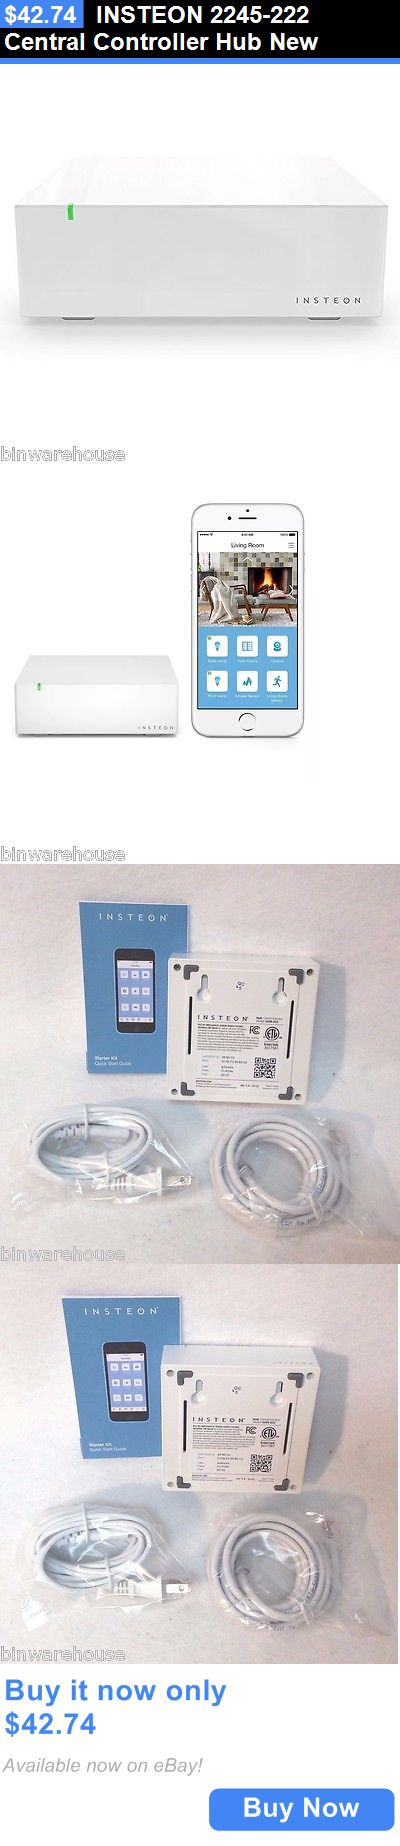 Home Automation Modules: Insteon 2245-222 Central Controller Hub New BUY IT NOW ONLY: $42.74